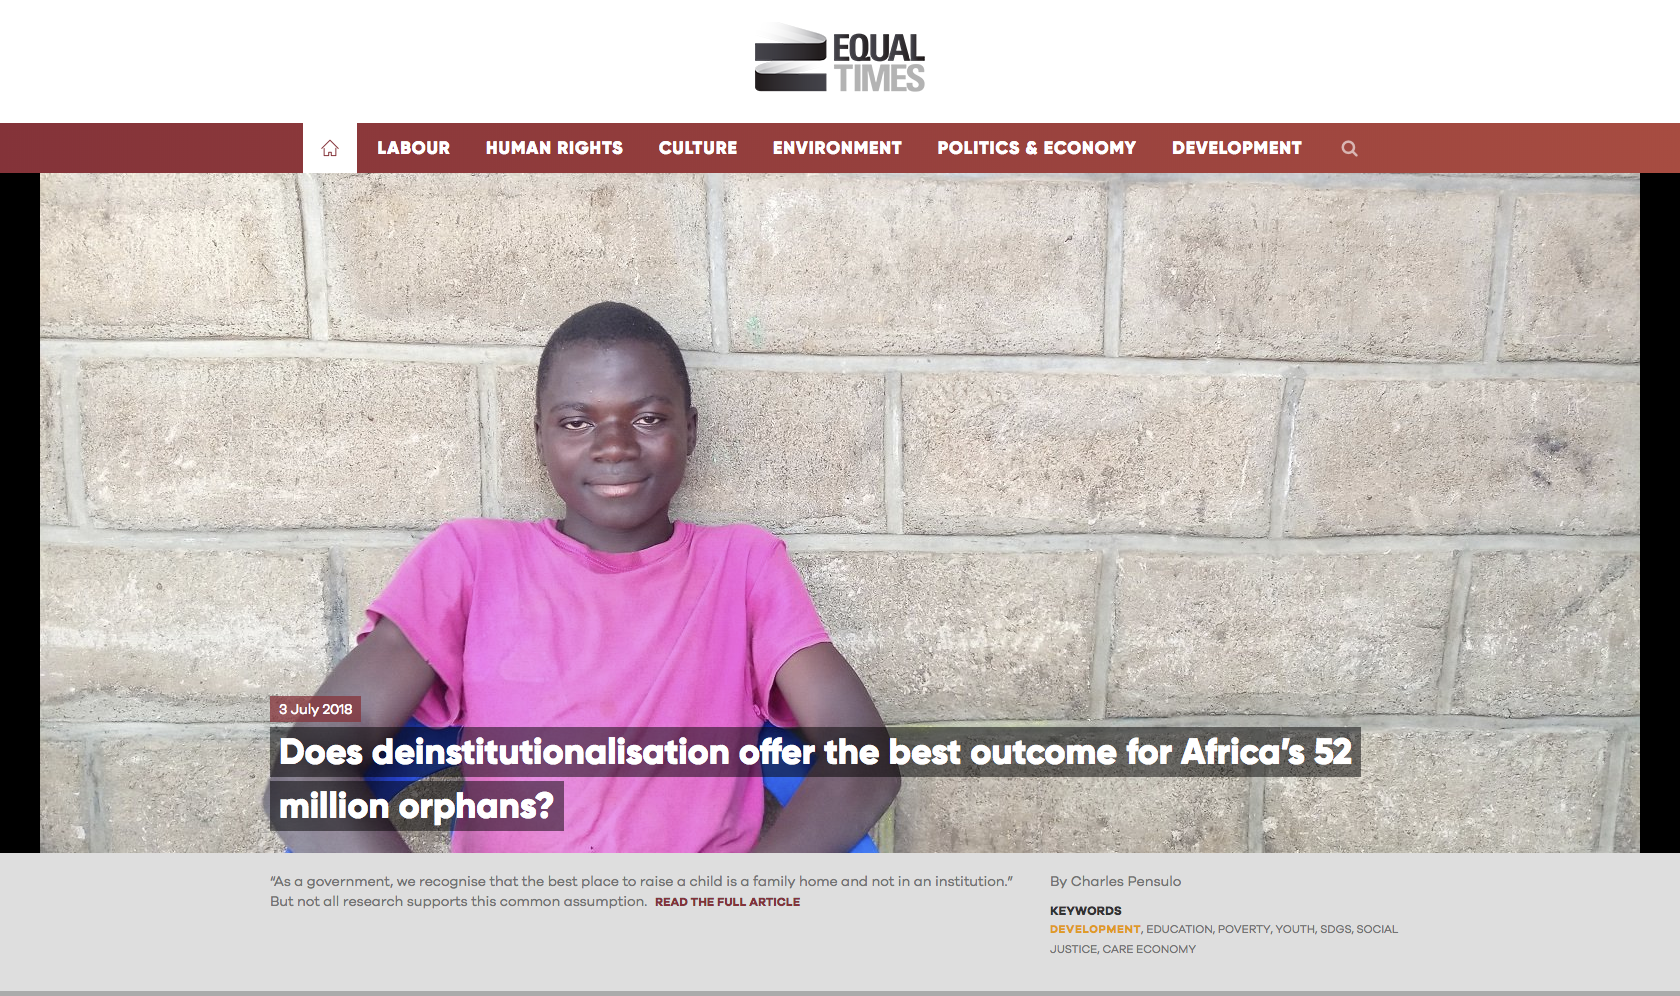 Article on Deinstitutionalization in Malawi from The Equal Times